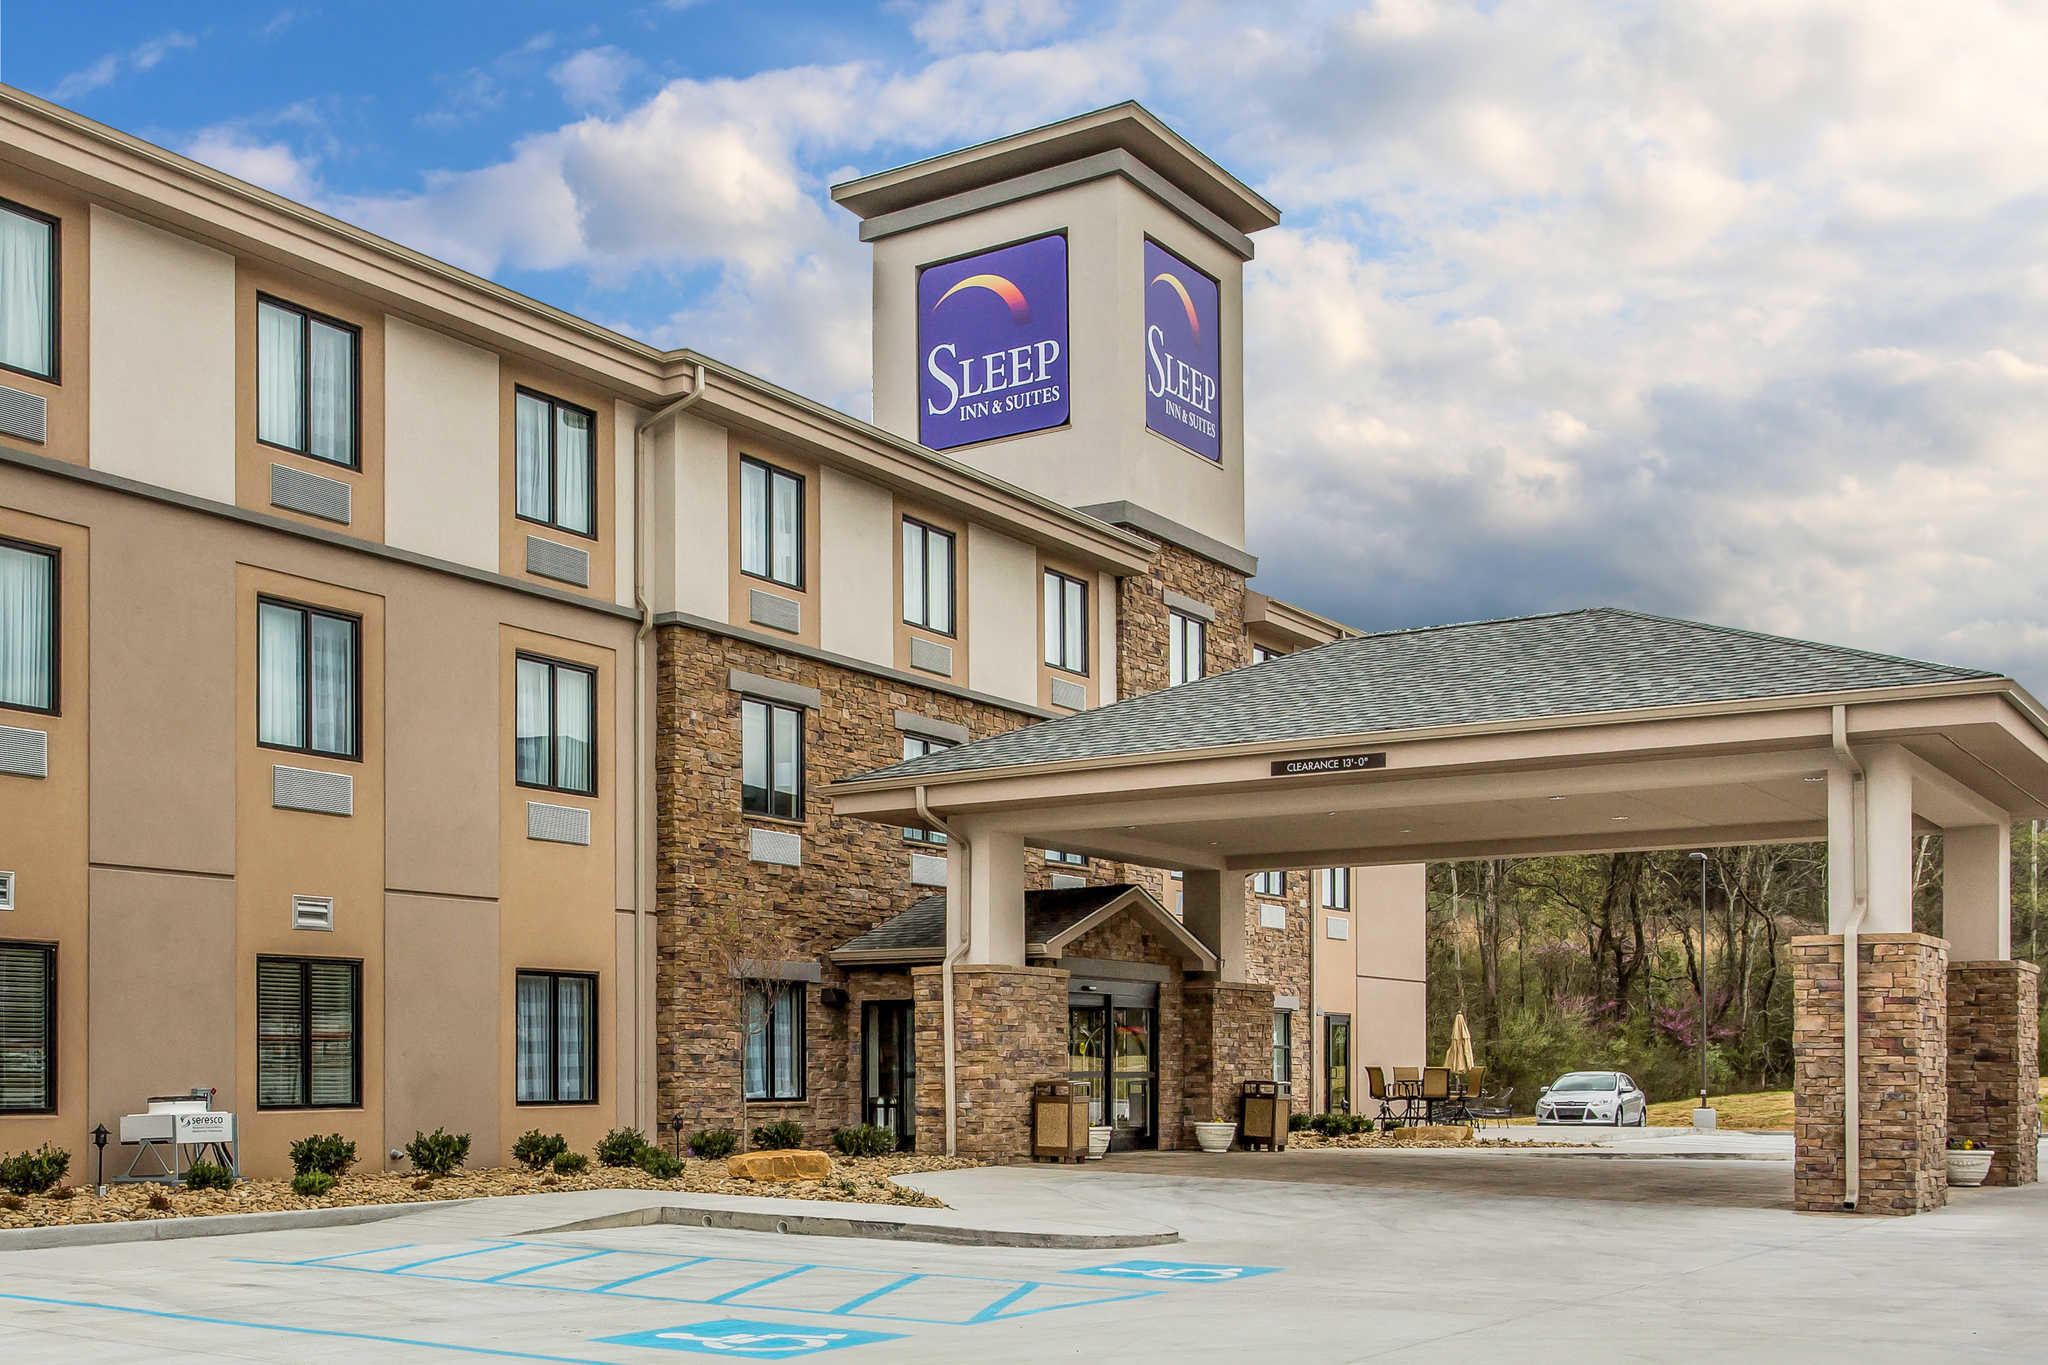 Sleep Inn  U0026 Suites  Dayton Tennessee  Tn